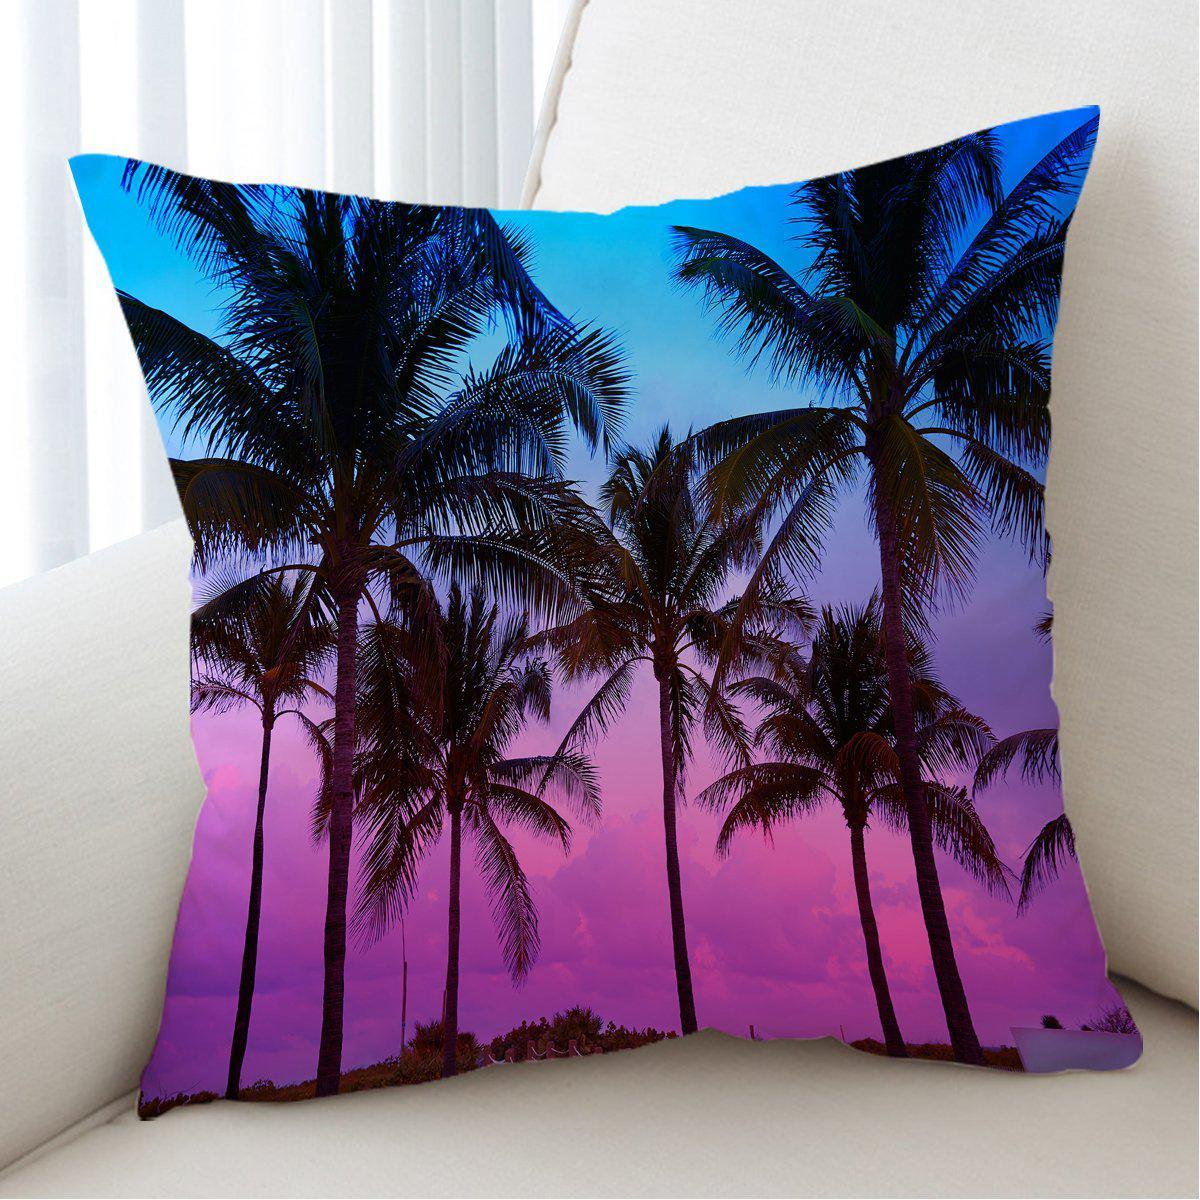 Tropical Skies Pillow Cover-Coastal Passion